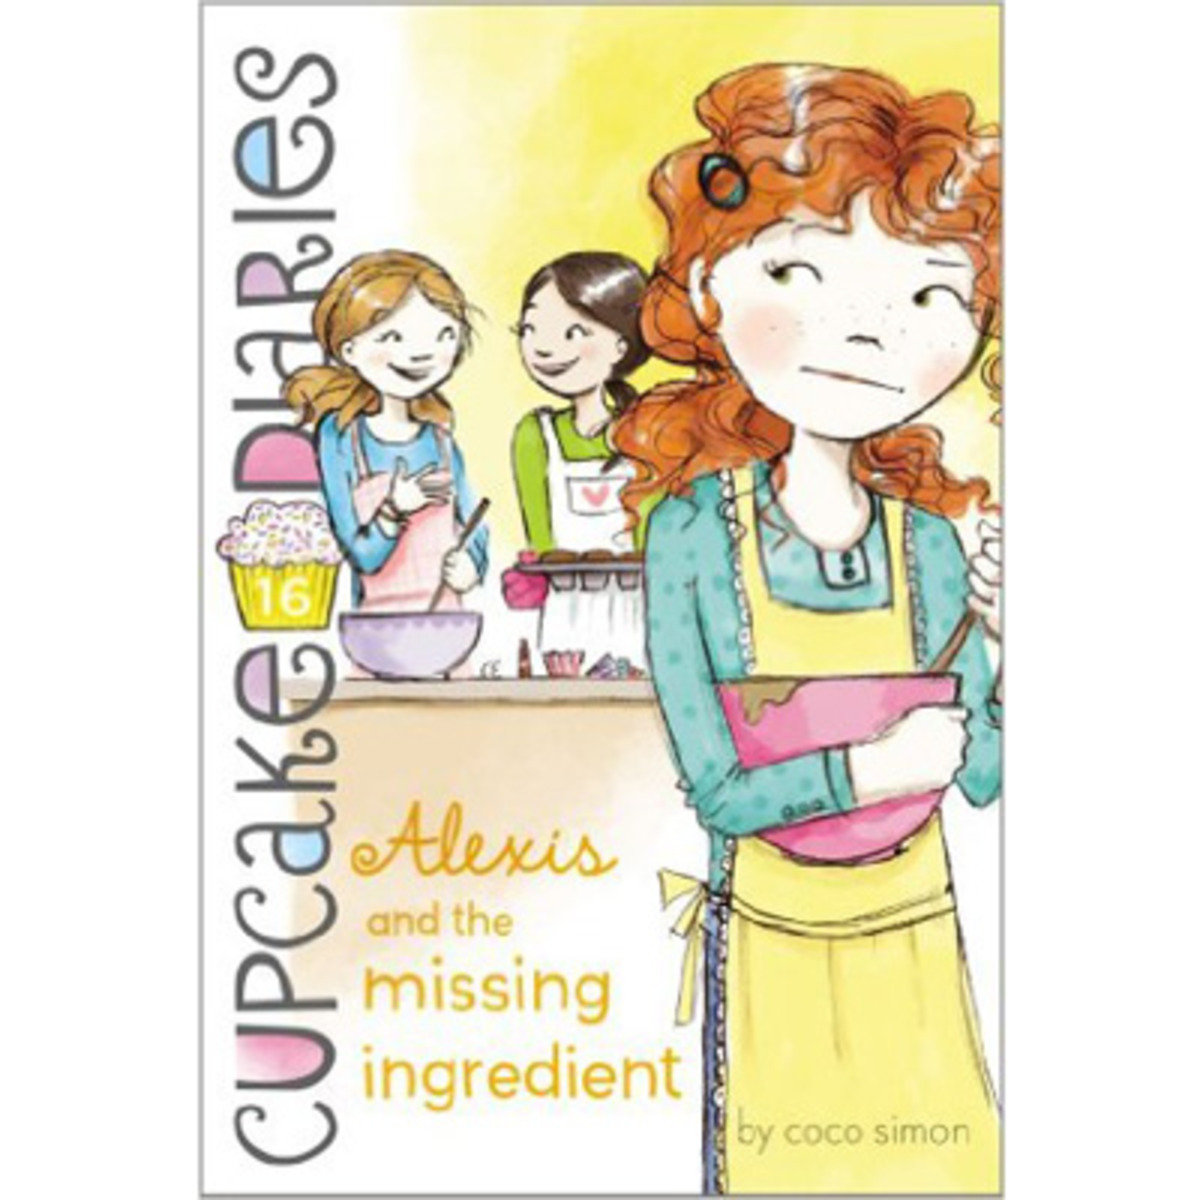 CUPCAKE DIARIES #16 ALEXIS AND THE MISSING INGREDIENT 9781442485877